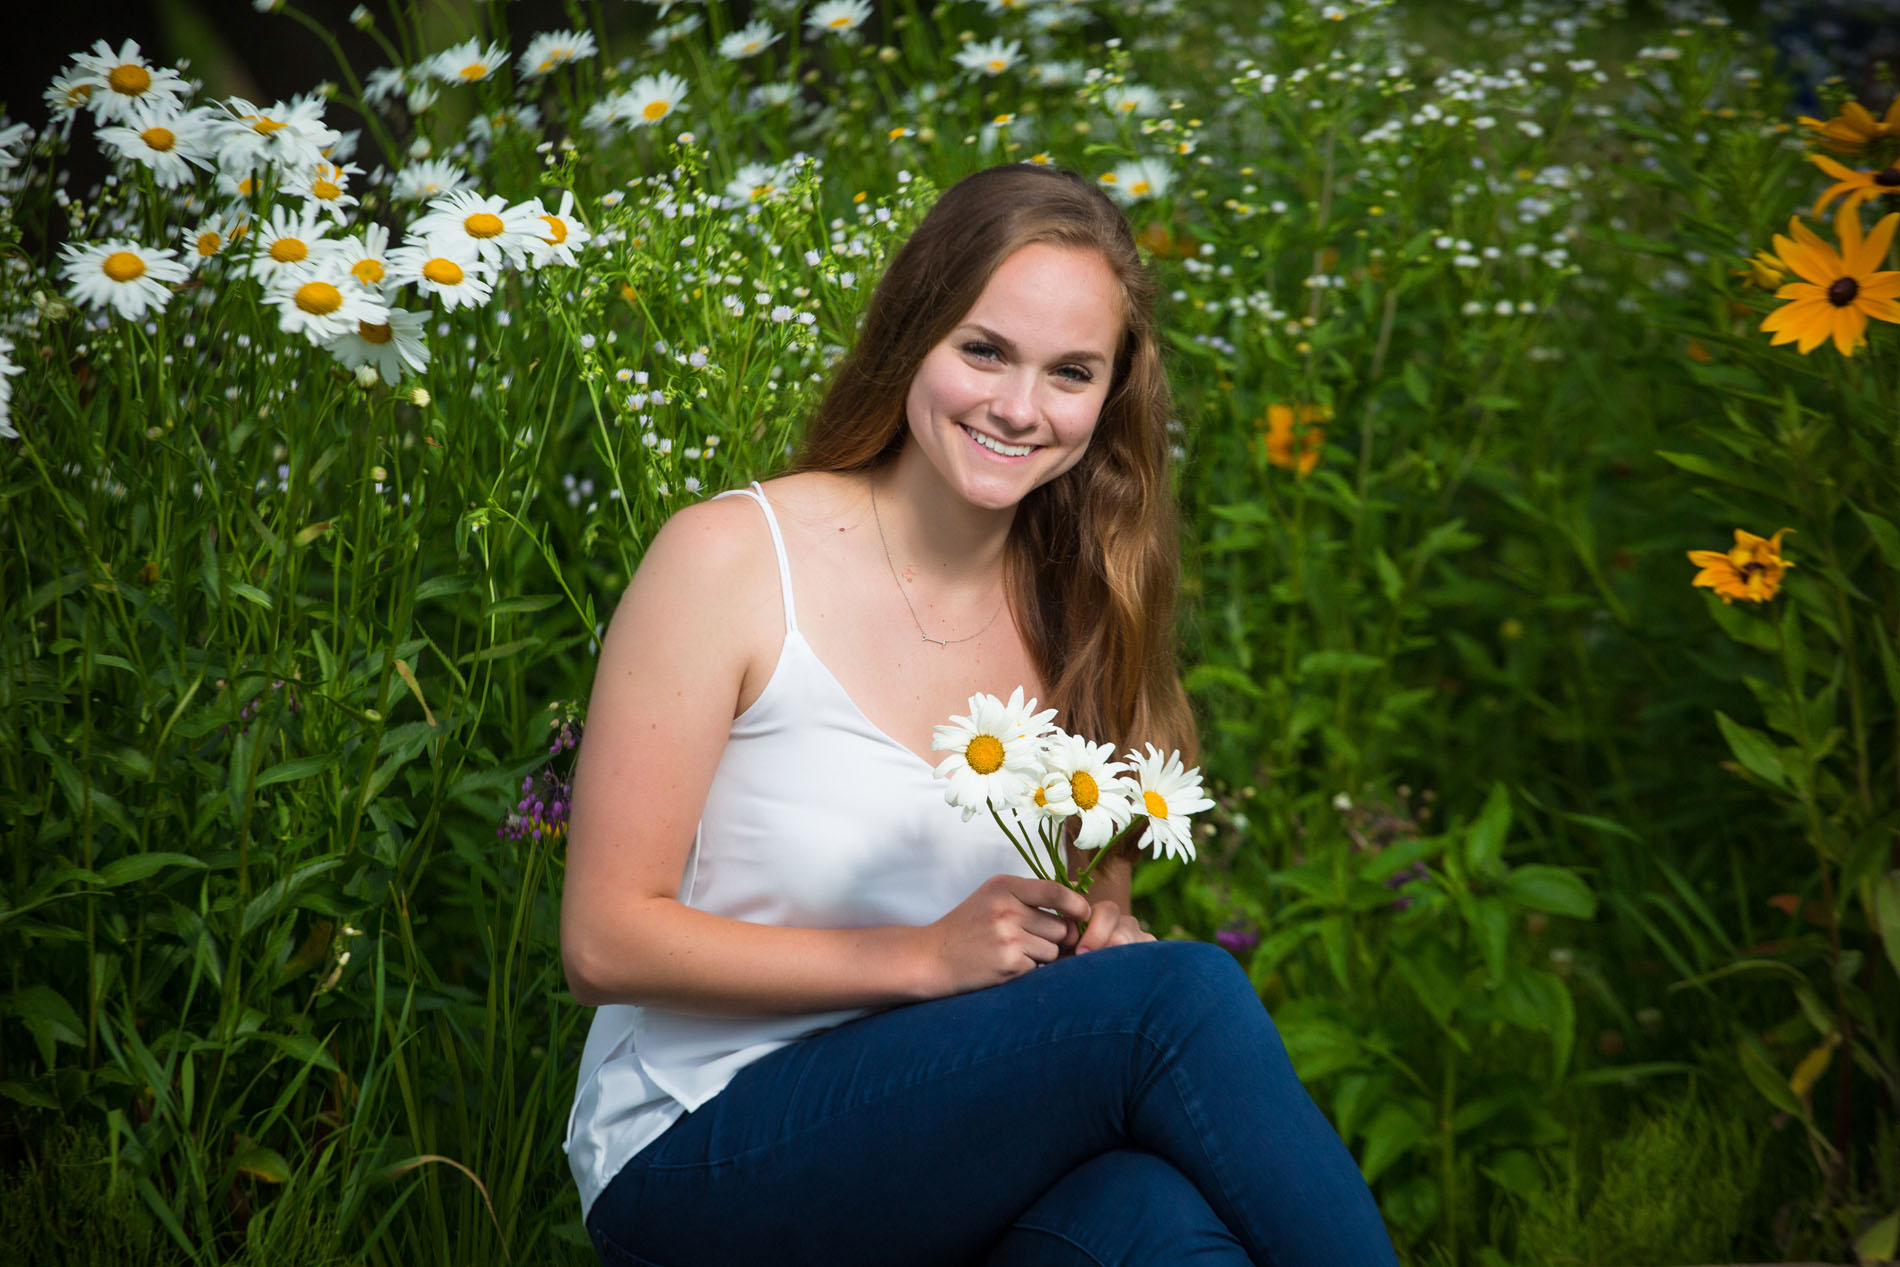 girl in white tank top photographed among sun flowers in fort williams park for senior photo shoot